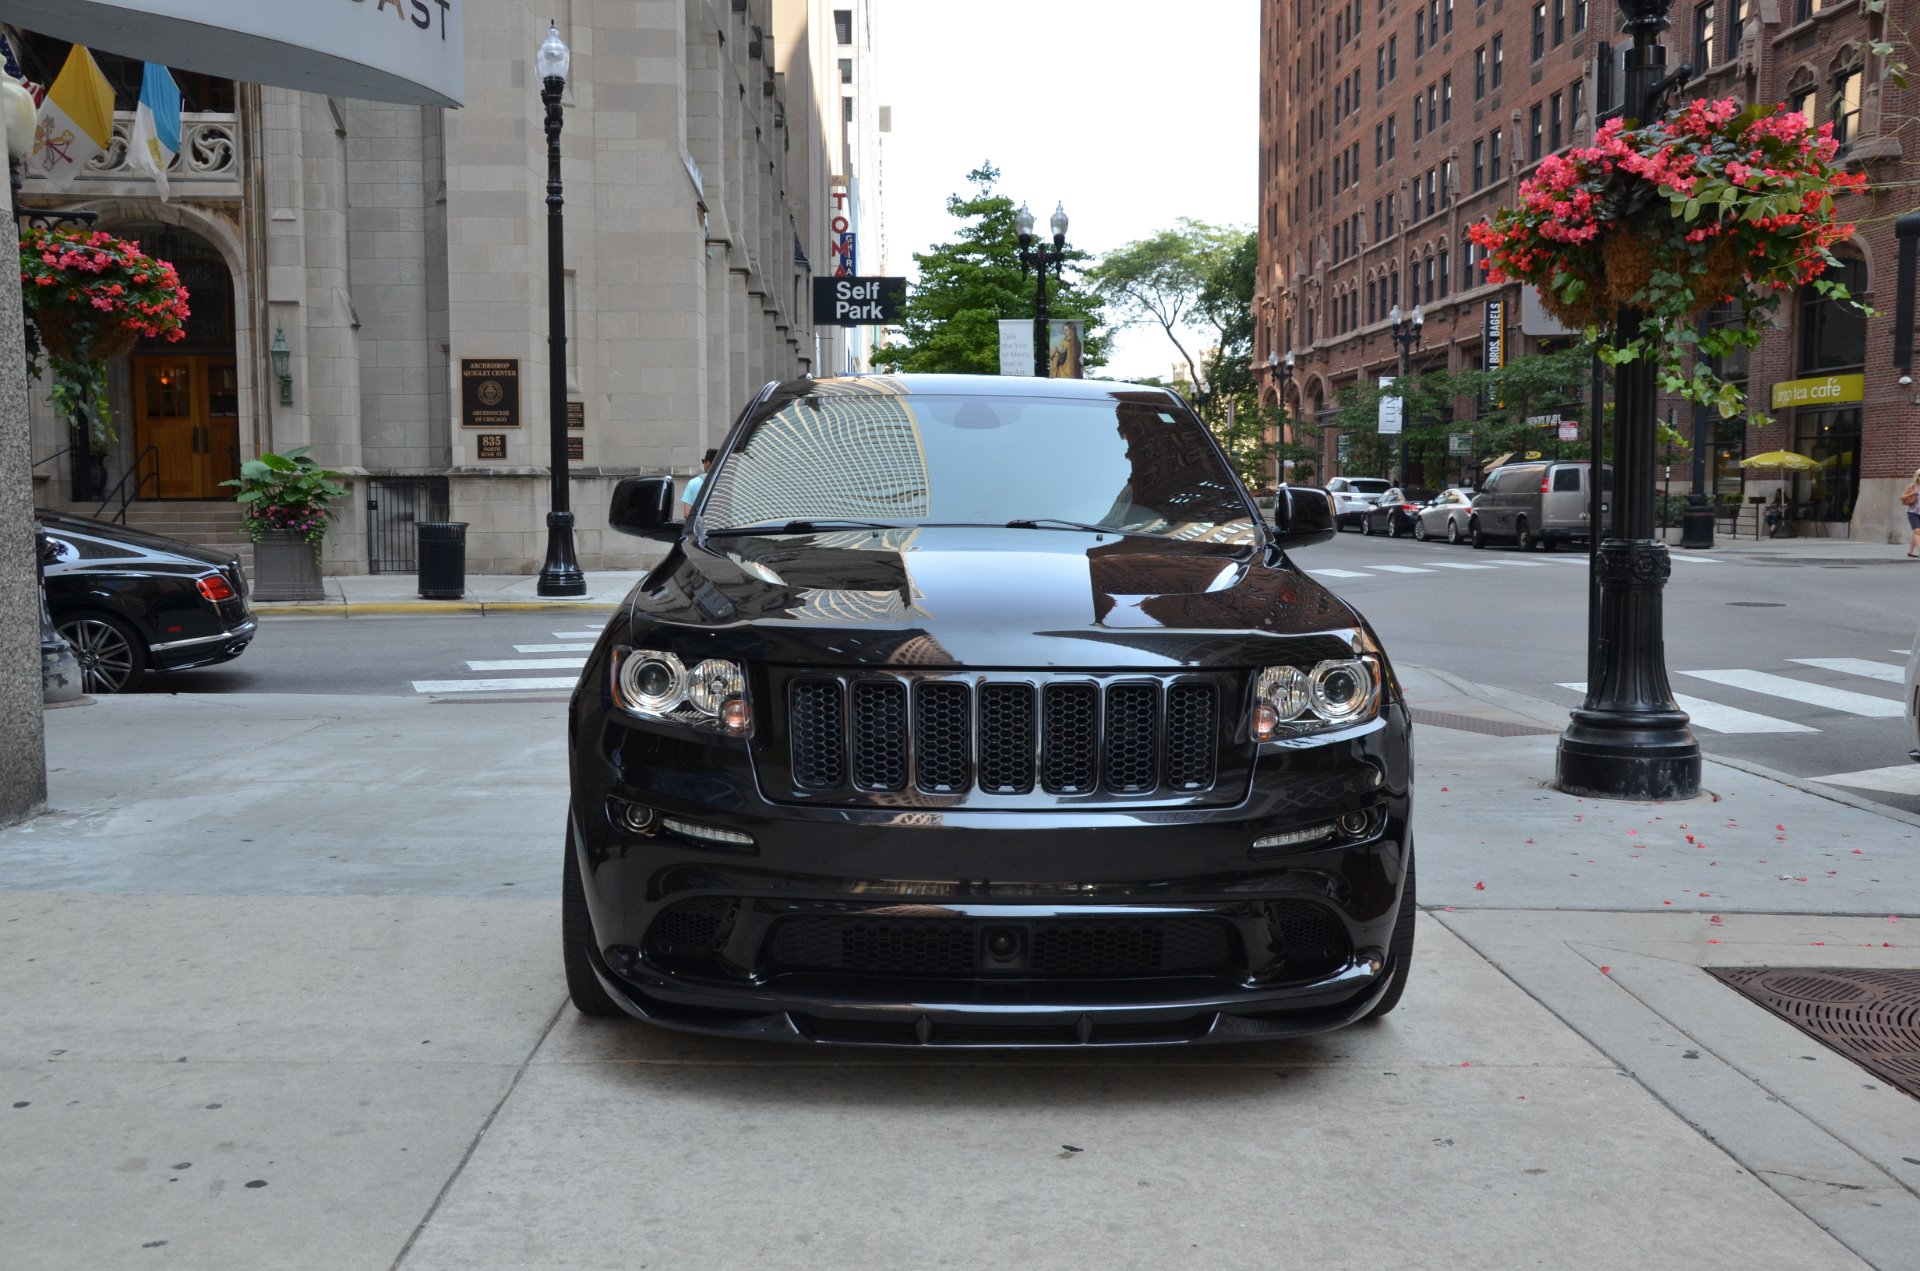 2012 jeep grand cherokee srt8 stock r365c for sale near chicago il il jeep dealer. Black Bedroom Furniture Sets. Home Design Ideas